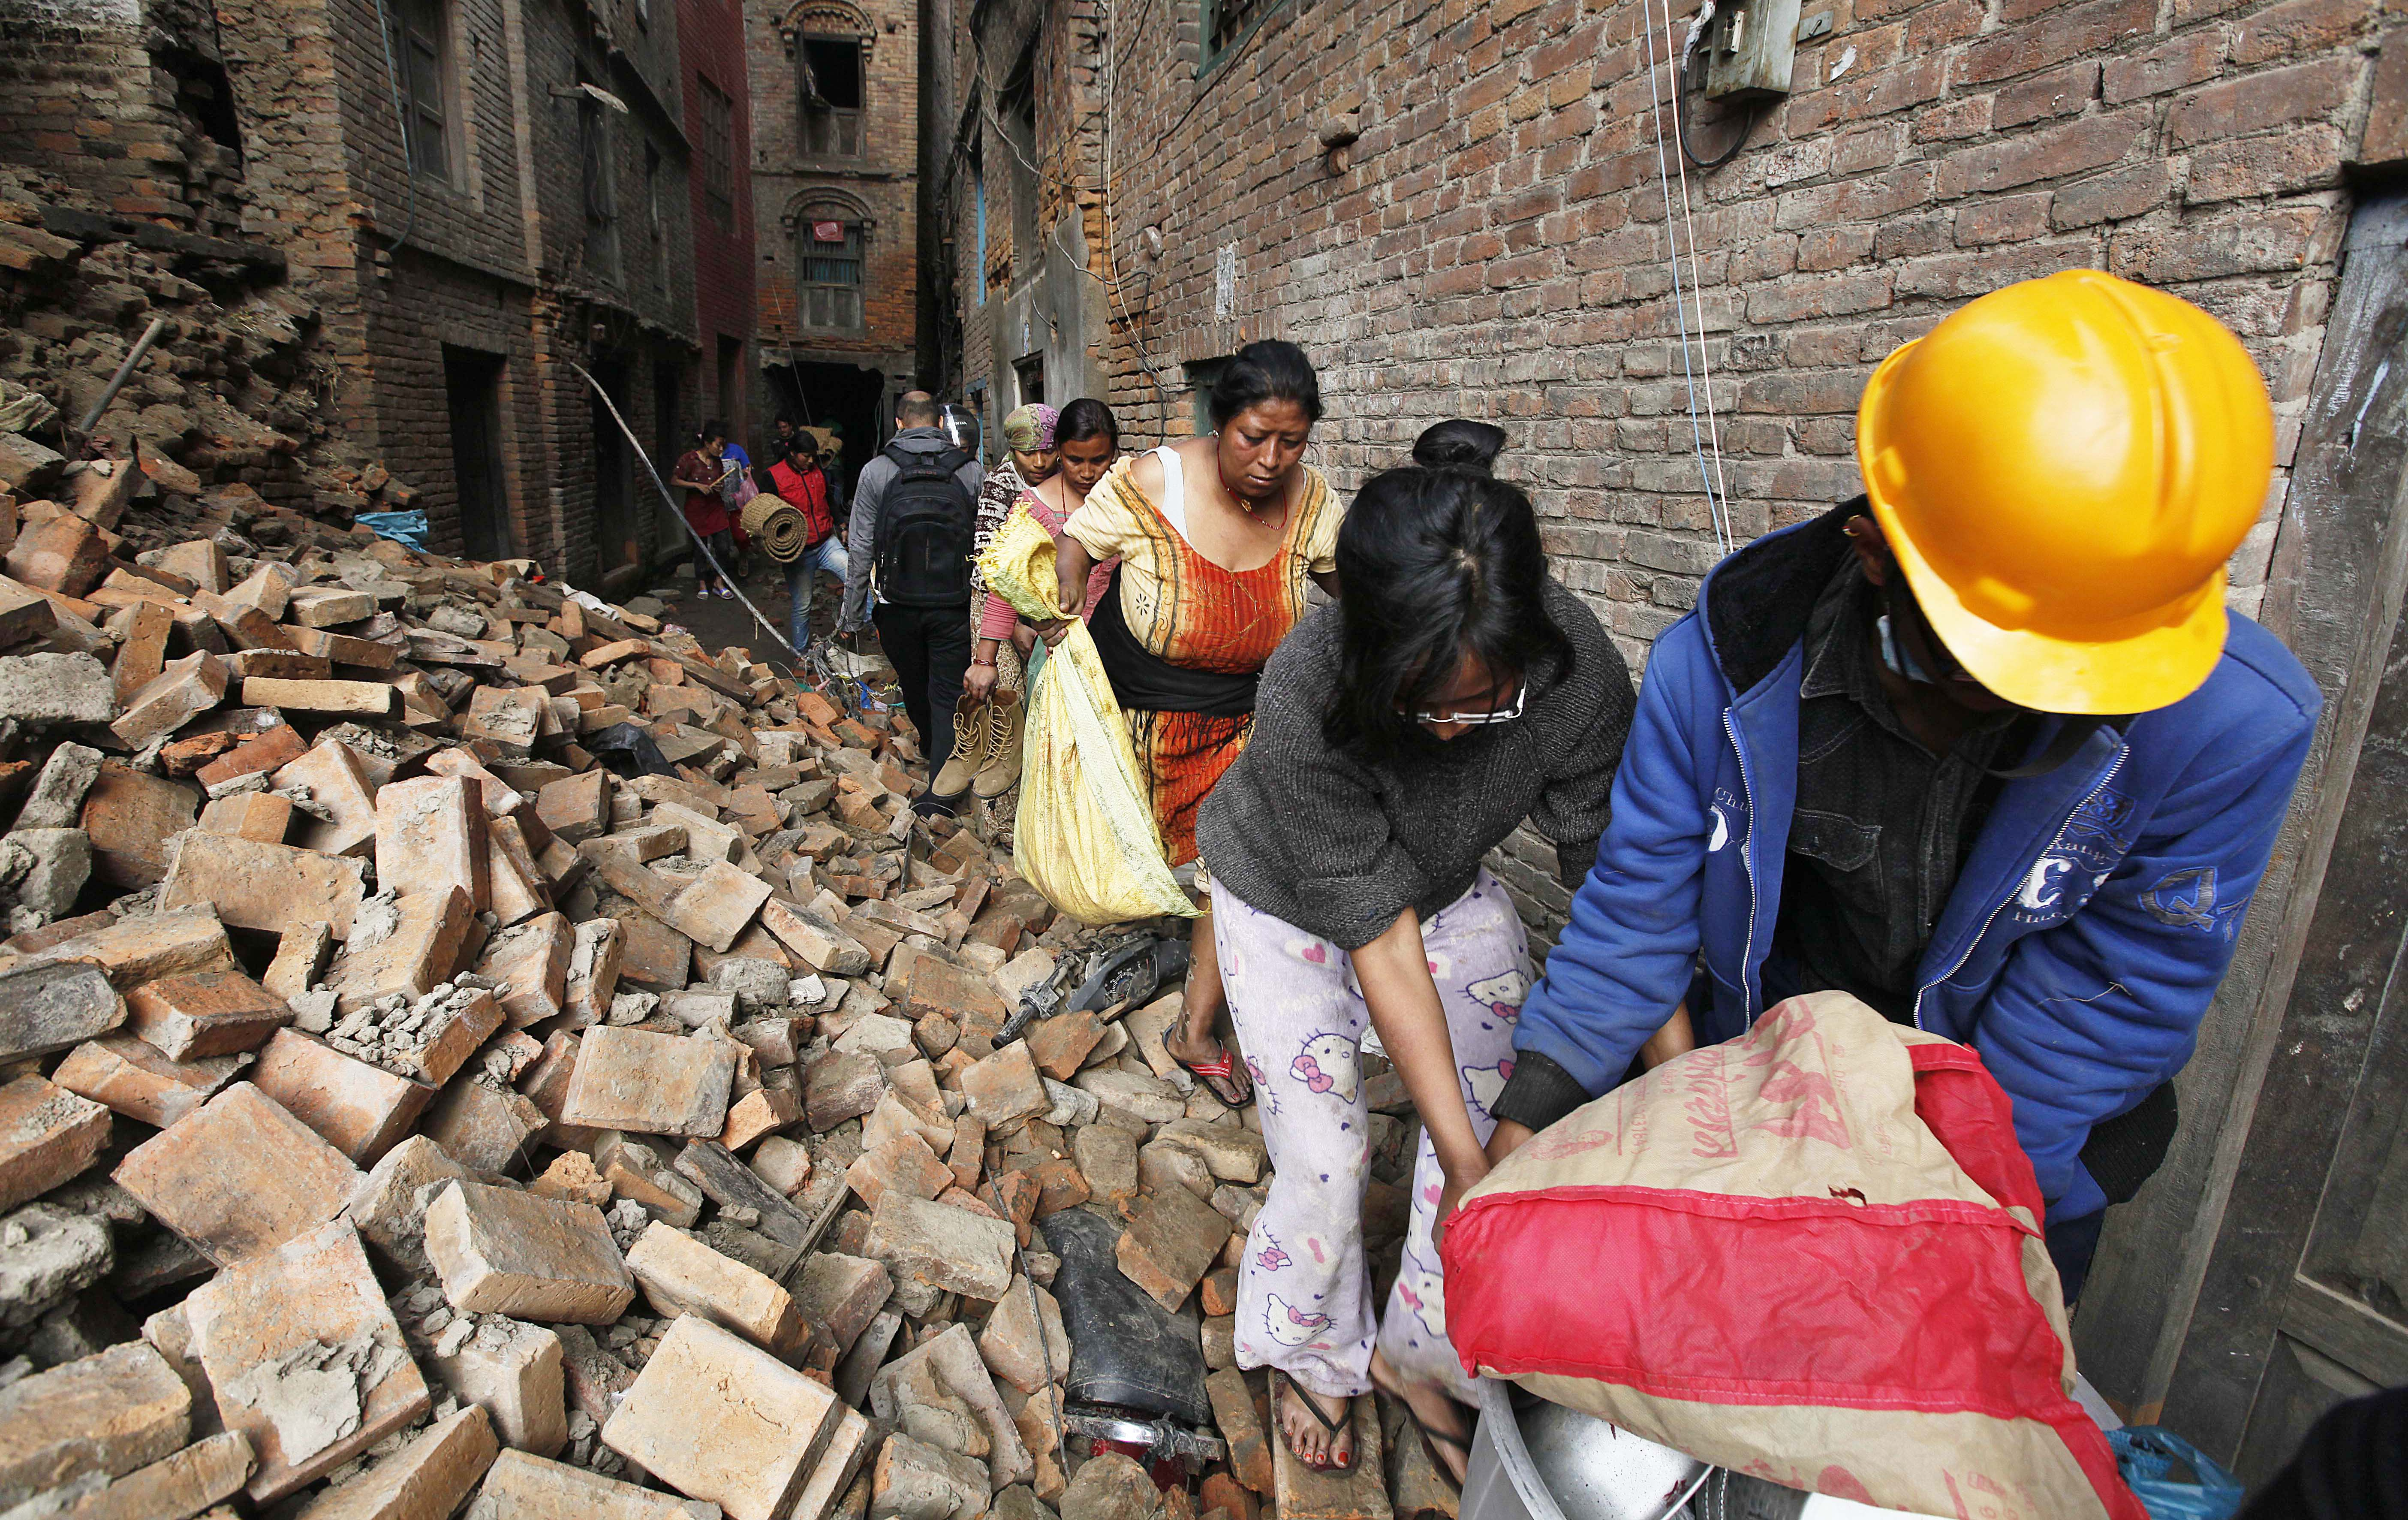 KATHMANDU, NEPAL – APRIL 28: Nepalese people rescue items from the debris of houses damaged in devastating earthquake at Bhaktapur on April 28, 2015 in Kathmandu, Nepal. The death toll from the earthquake rose to over 4,600. Another 72 people died in India, while China reported 25 deaths. Aid groups and at least 16 nations rushed aid and workers to Nepal, with more on the way. (Photo by Raj K Raj/Hindustan Times via Getty Images)